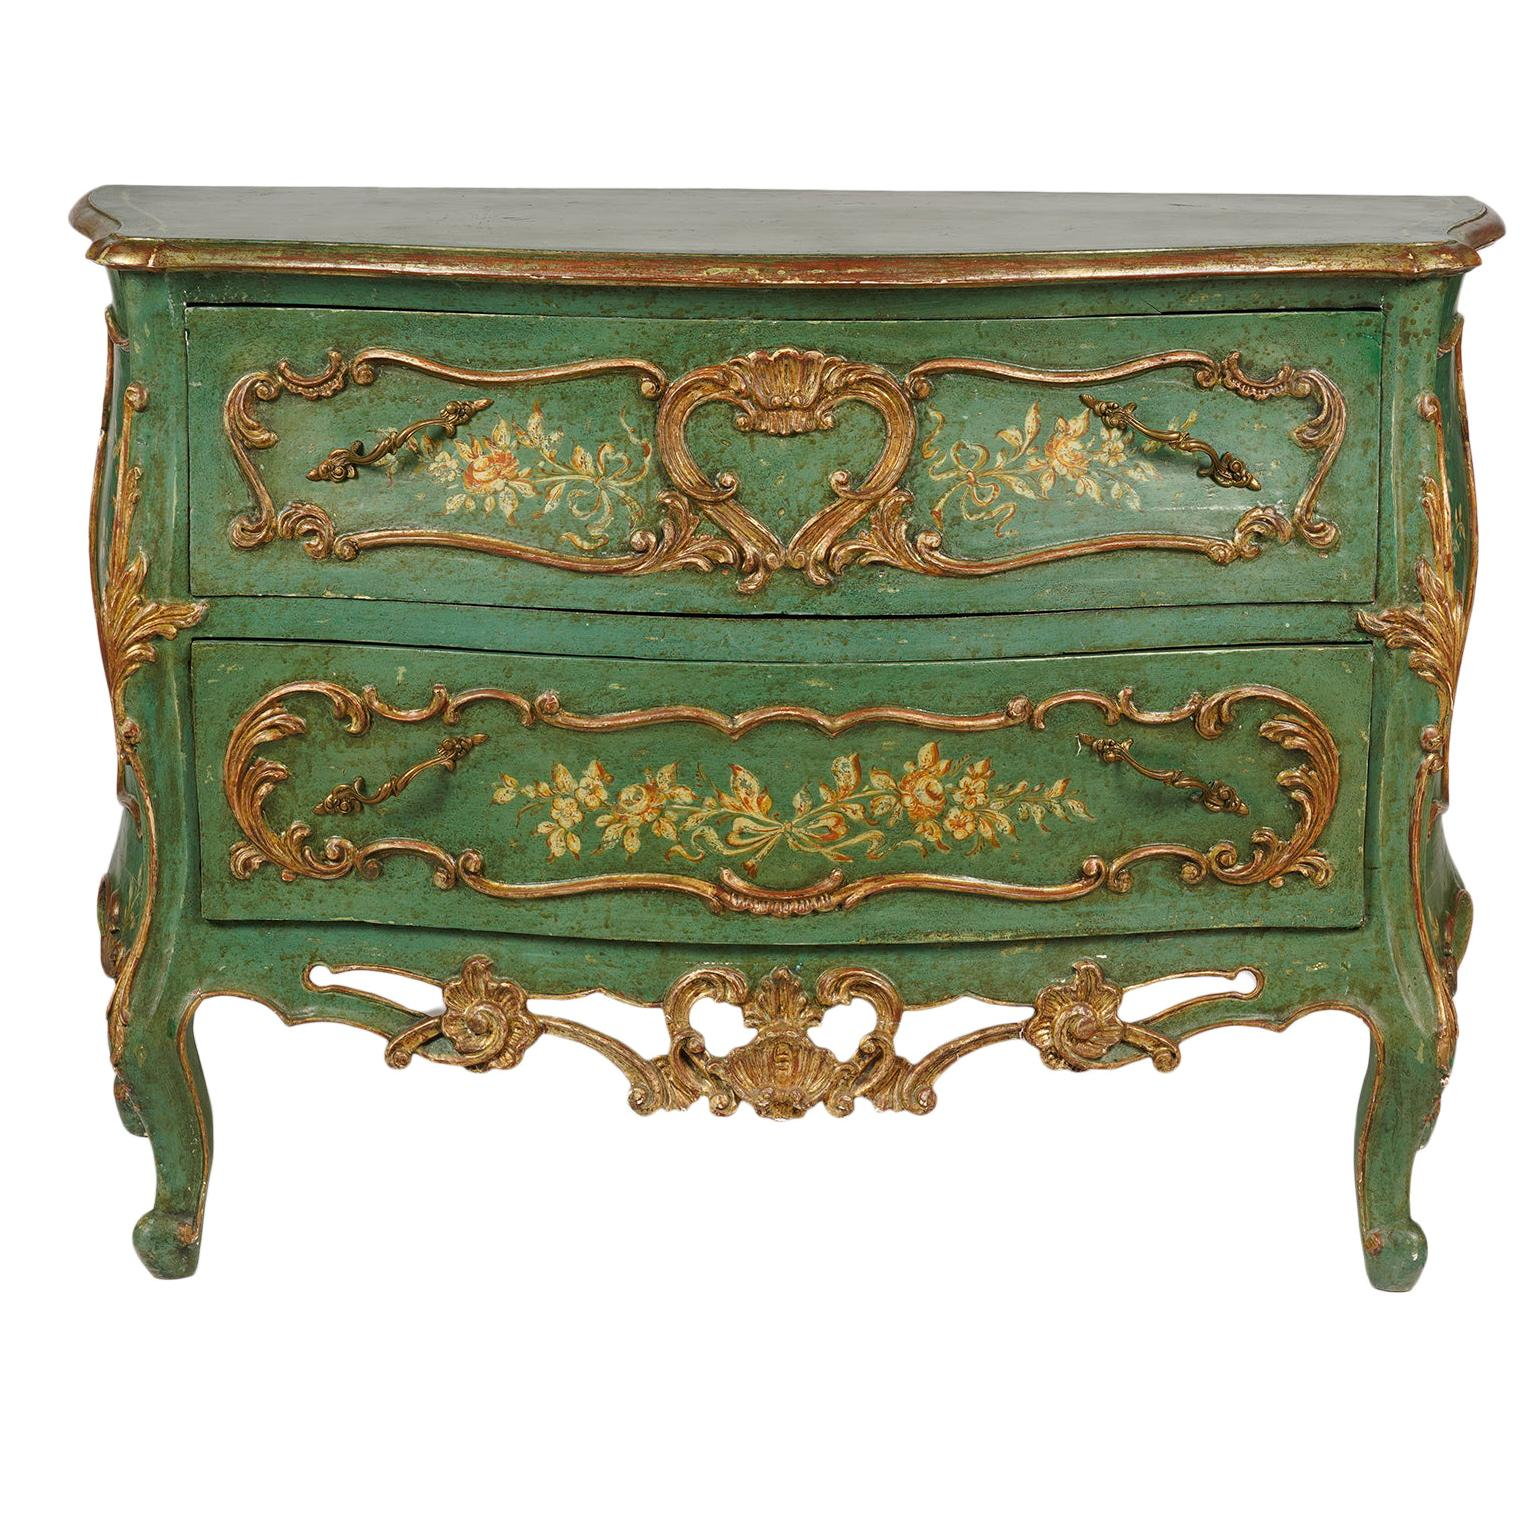 Italian Paint and Parcel Gilt Decorated Serpentine Front Rococo Style Commode